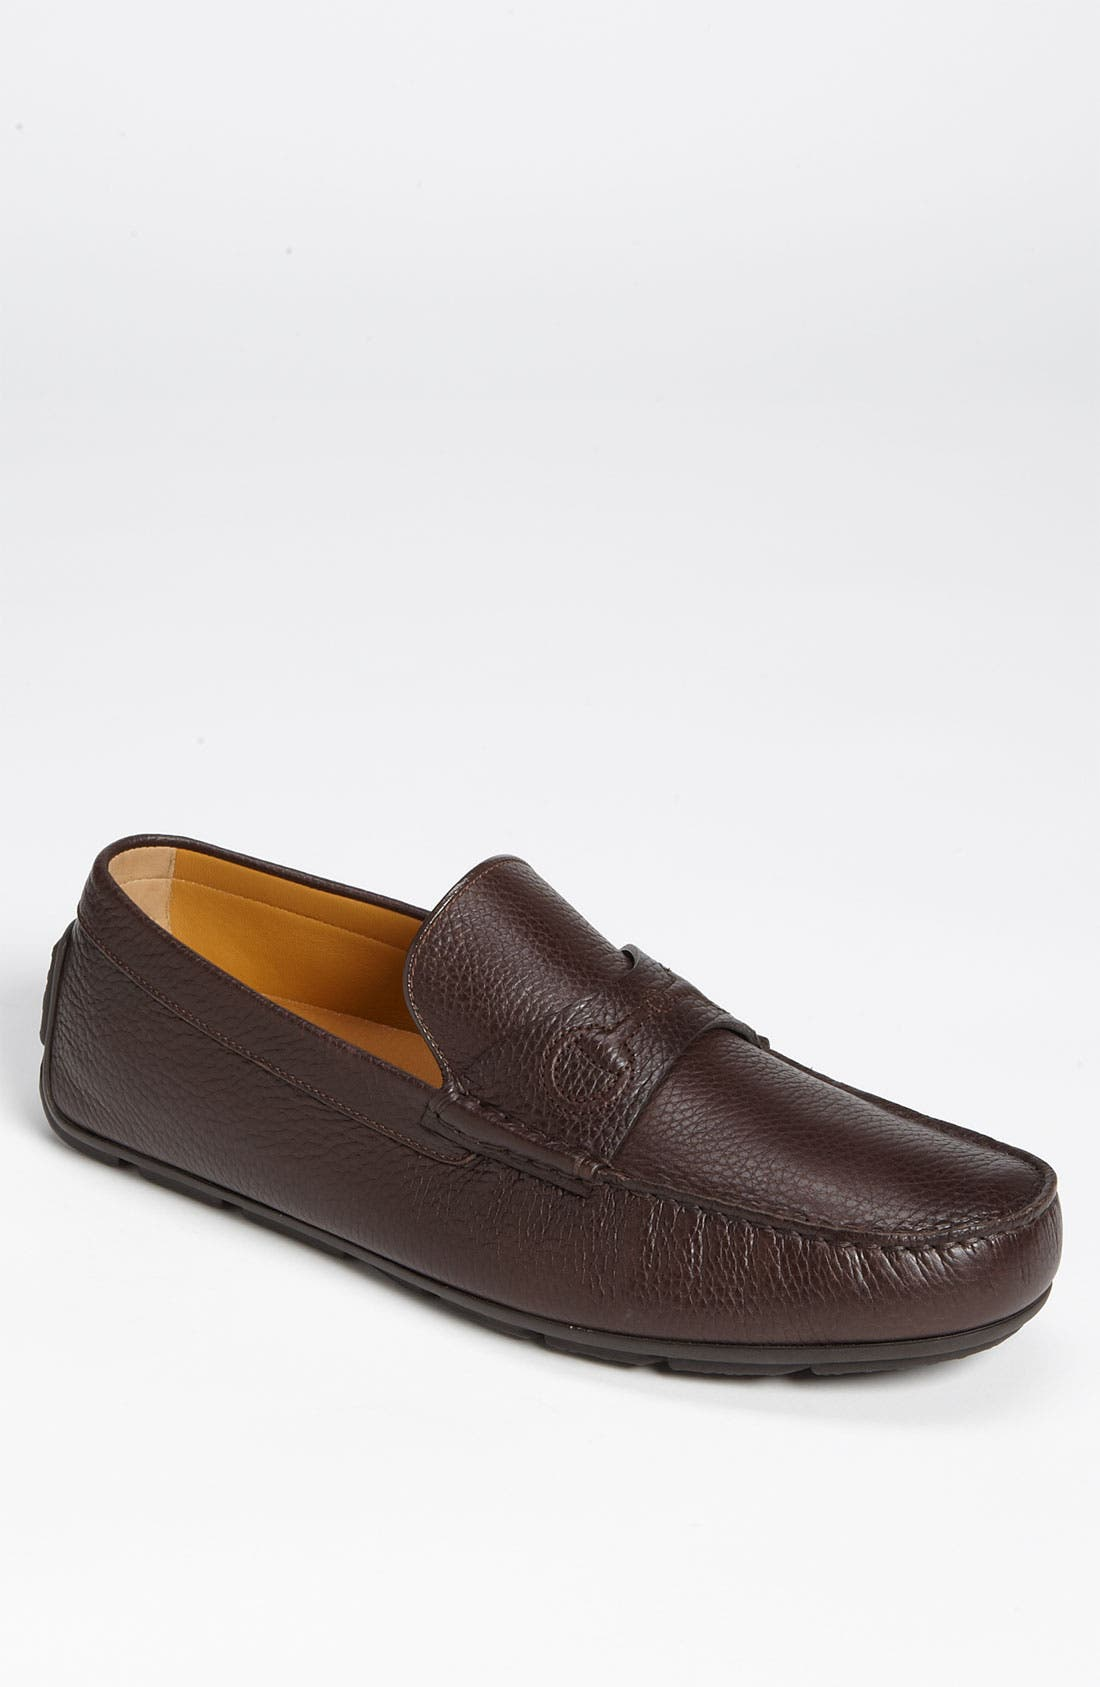 Alternate Image 1 Selected - Gucci 'Chabas' Pebbled Driving Shoe